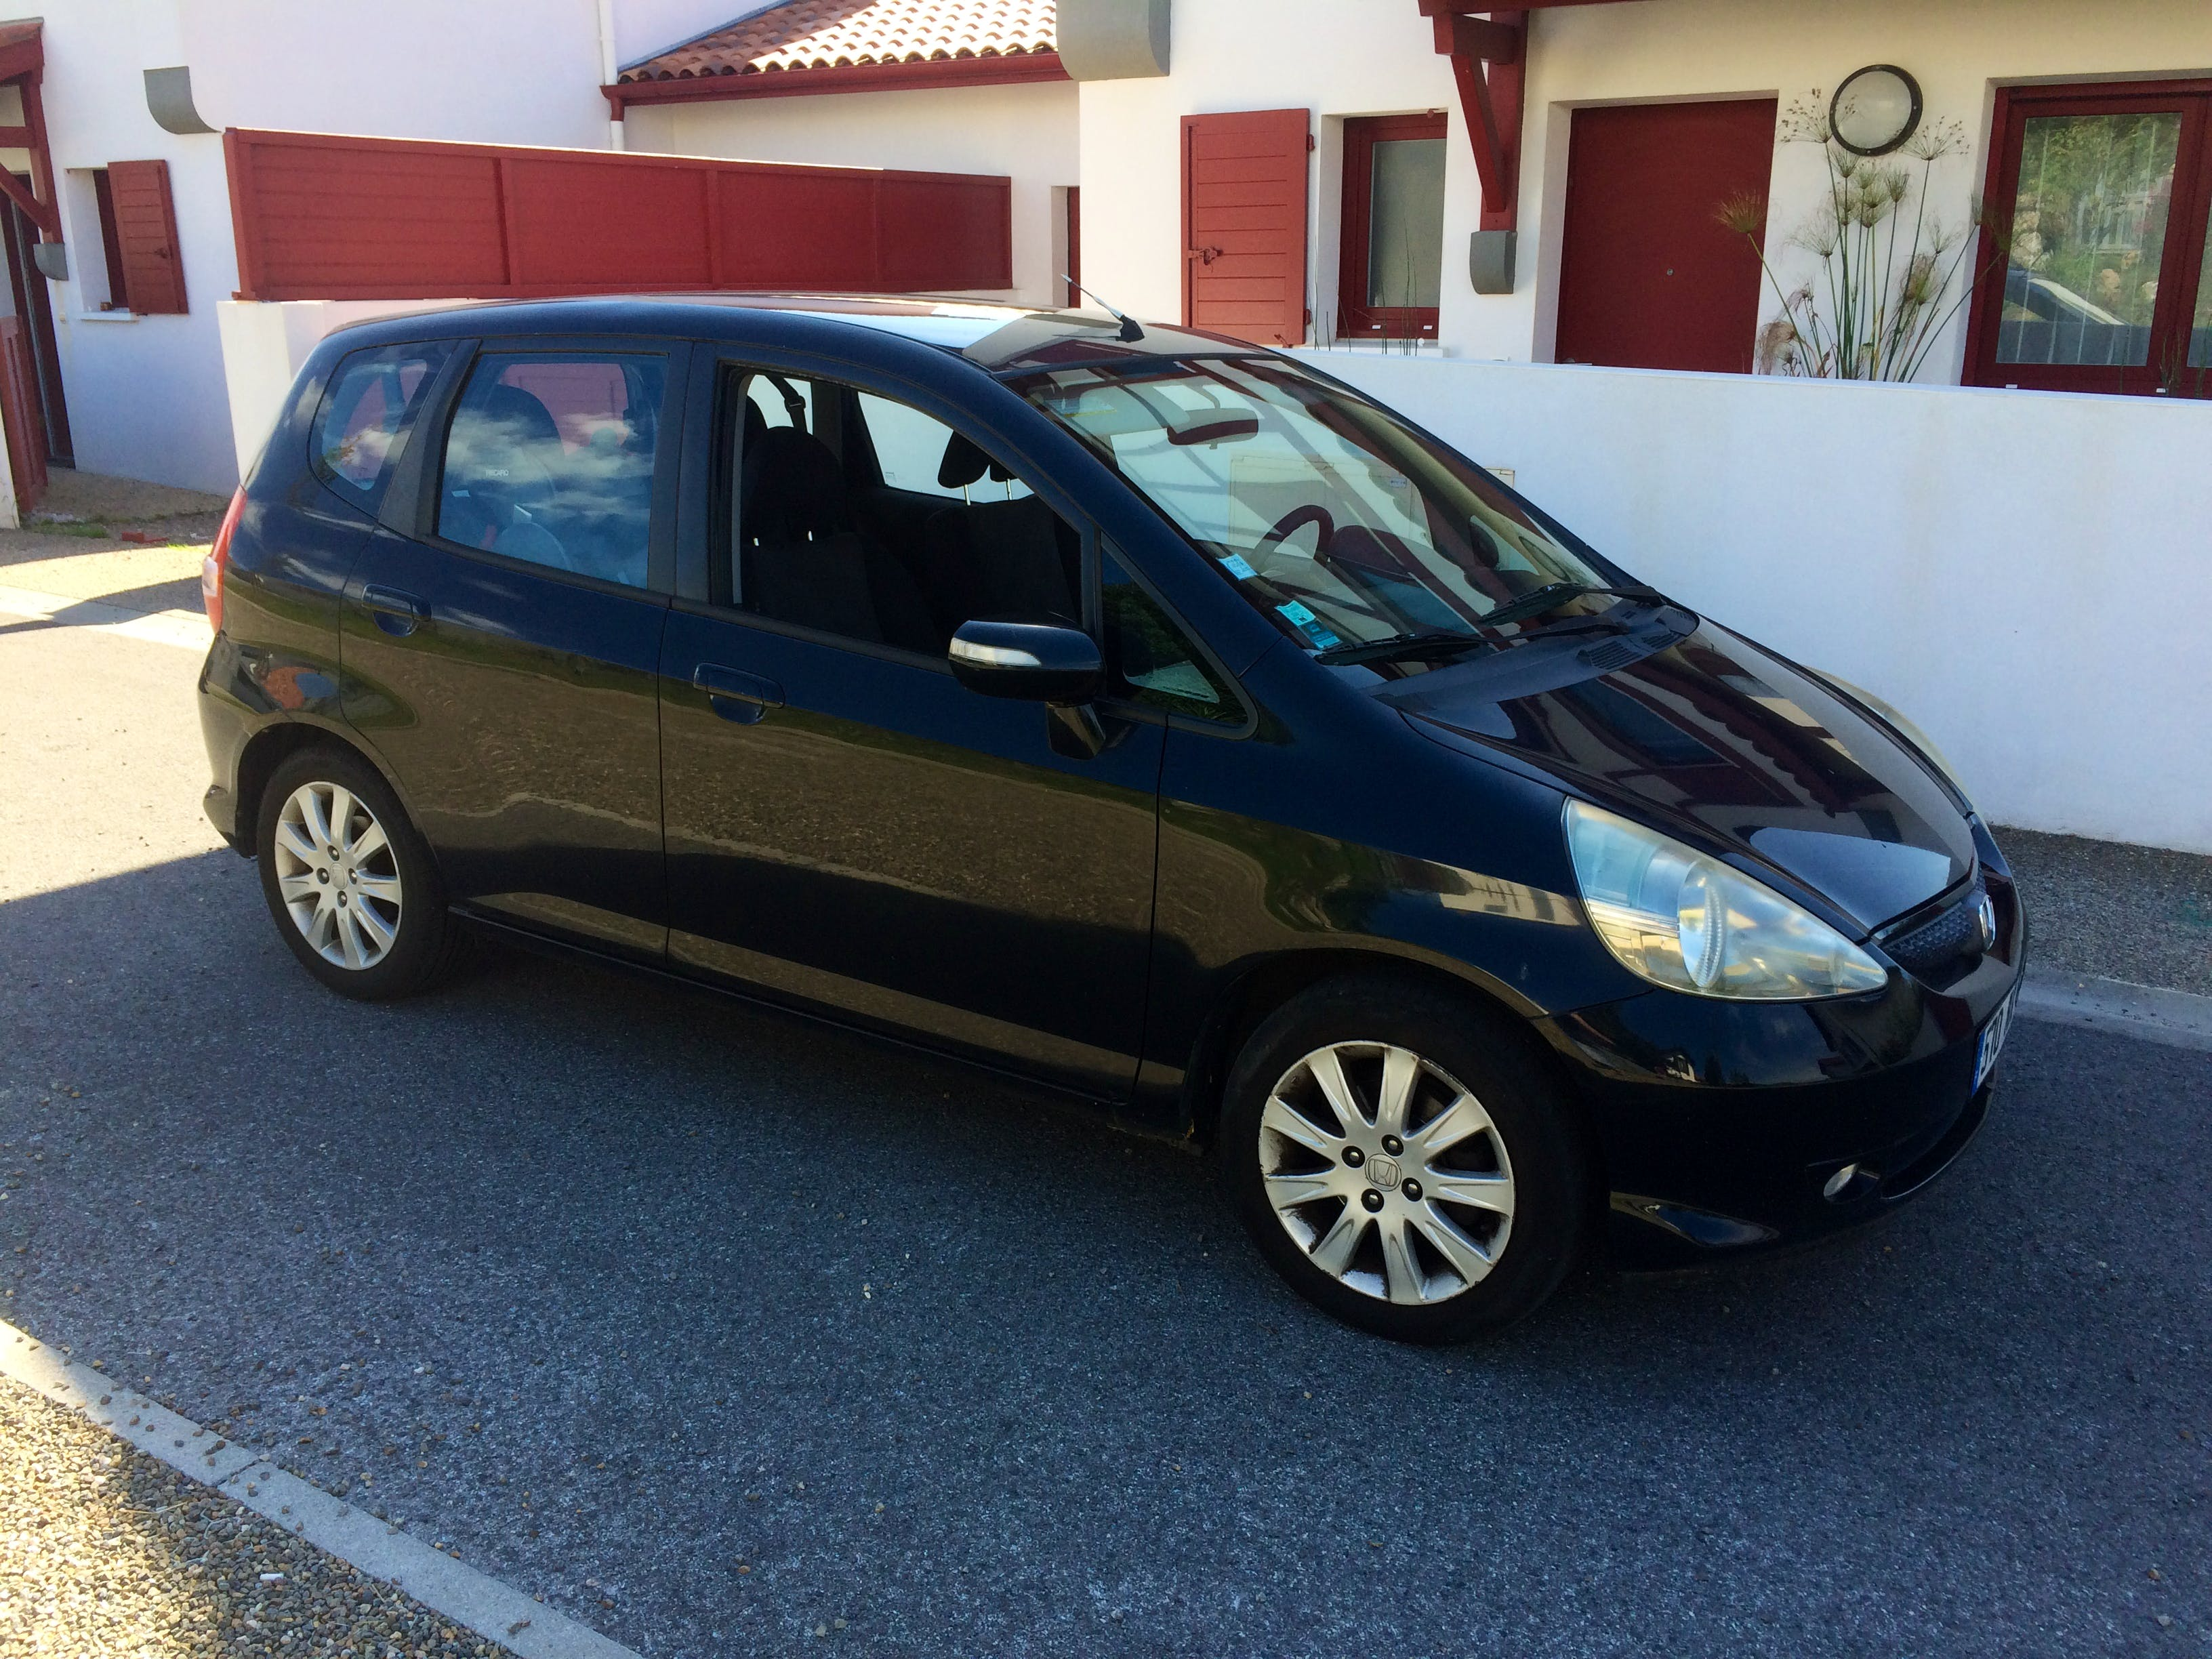 Honda Jazz 1.4, 2007, Essence, automatique